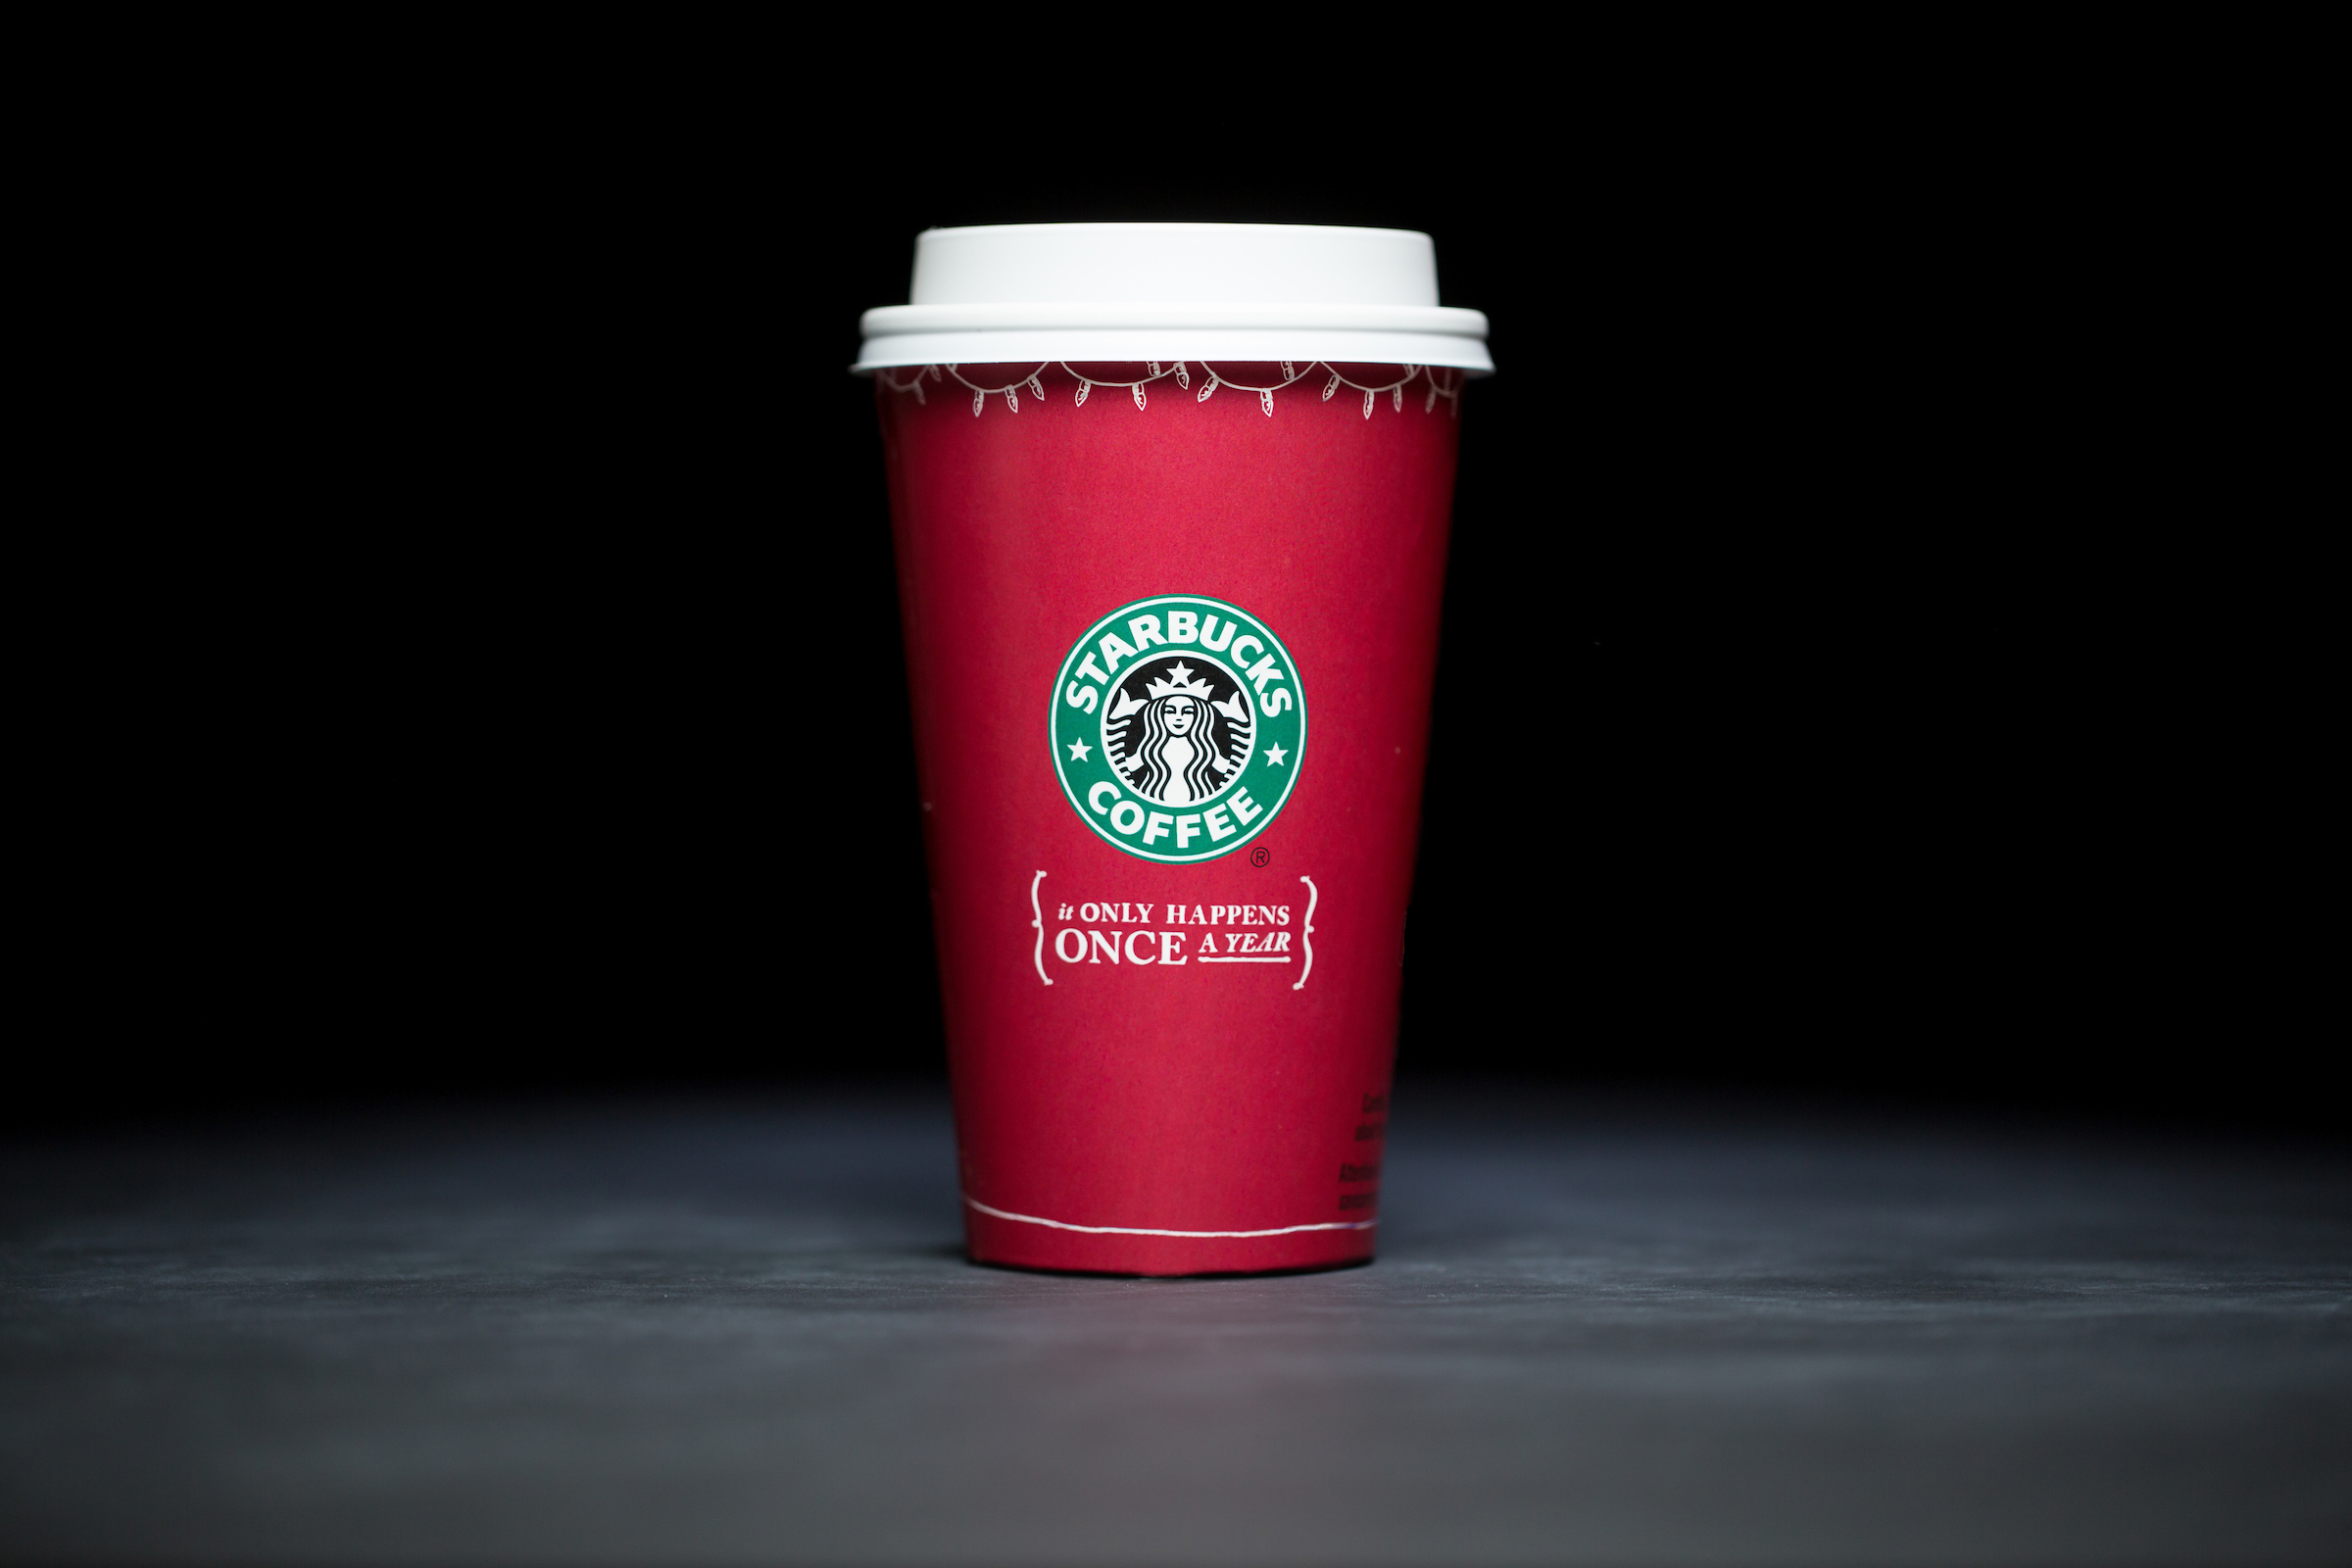 2005: For 20 years, Starbucks have released a range of holiday cup designs, most of them based around their world famous red cup. It's not easy to find the very first Starbucks holiday cups, which made their debut in stores in 1997. Few were saved, and electronic design files were lost in an earthquake in 2001. Even an Internet search is unyielding, with the cups having made their arrival long before the first selfie. But, we have them here! Click on for a photos of all 20 holidays cup designs. (Image: Joshua Trujillo/Cover Images)